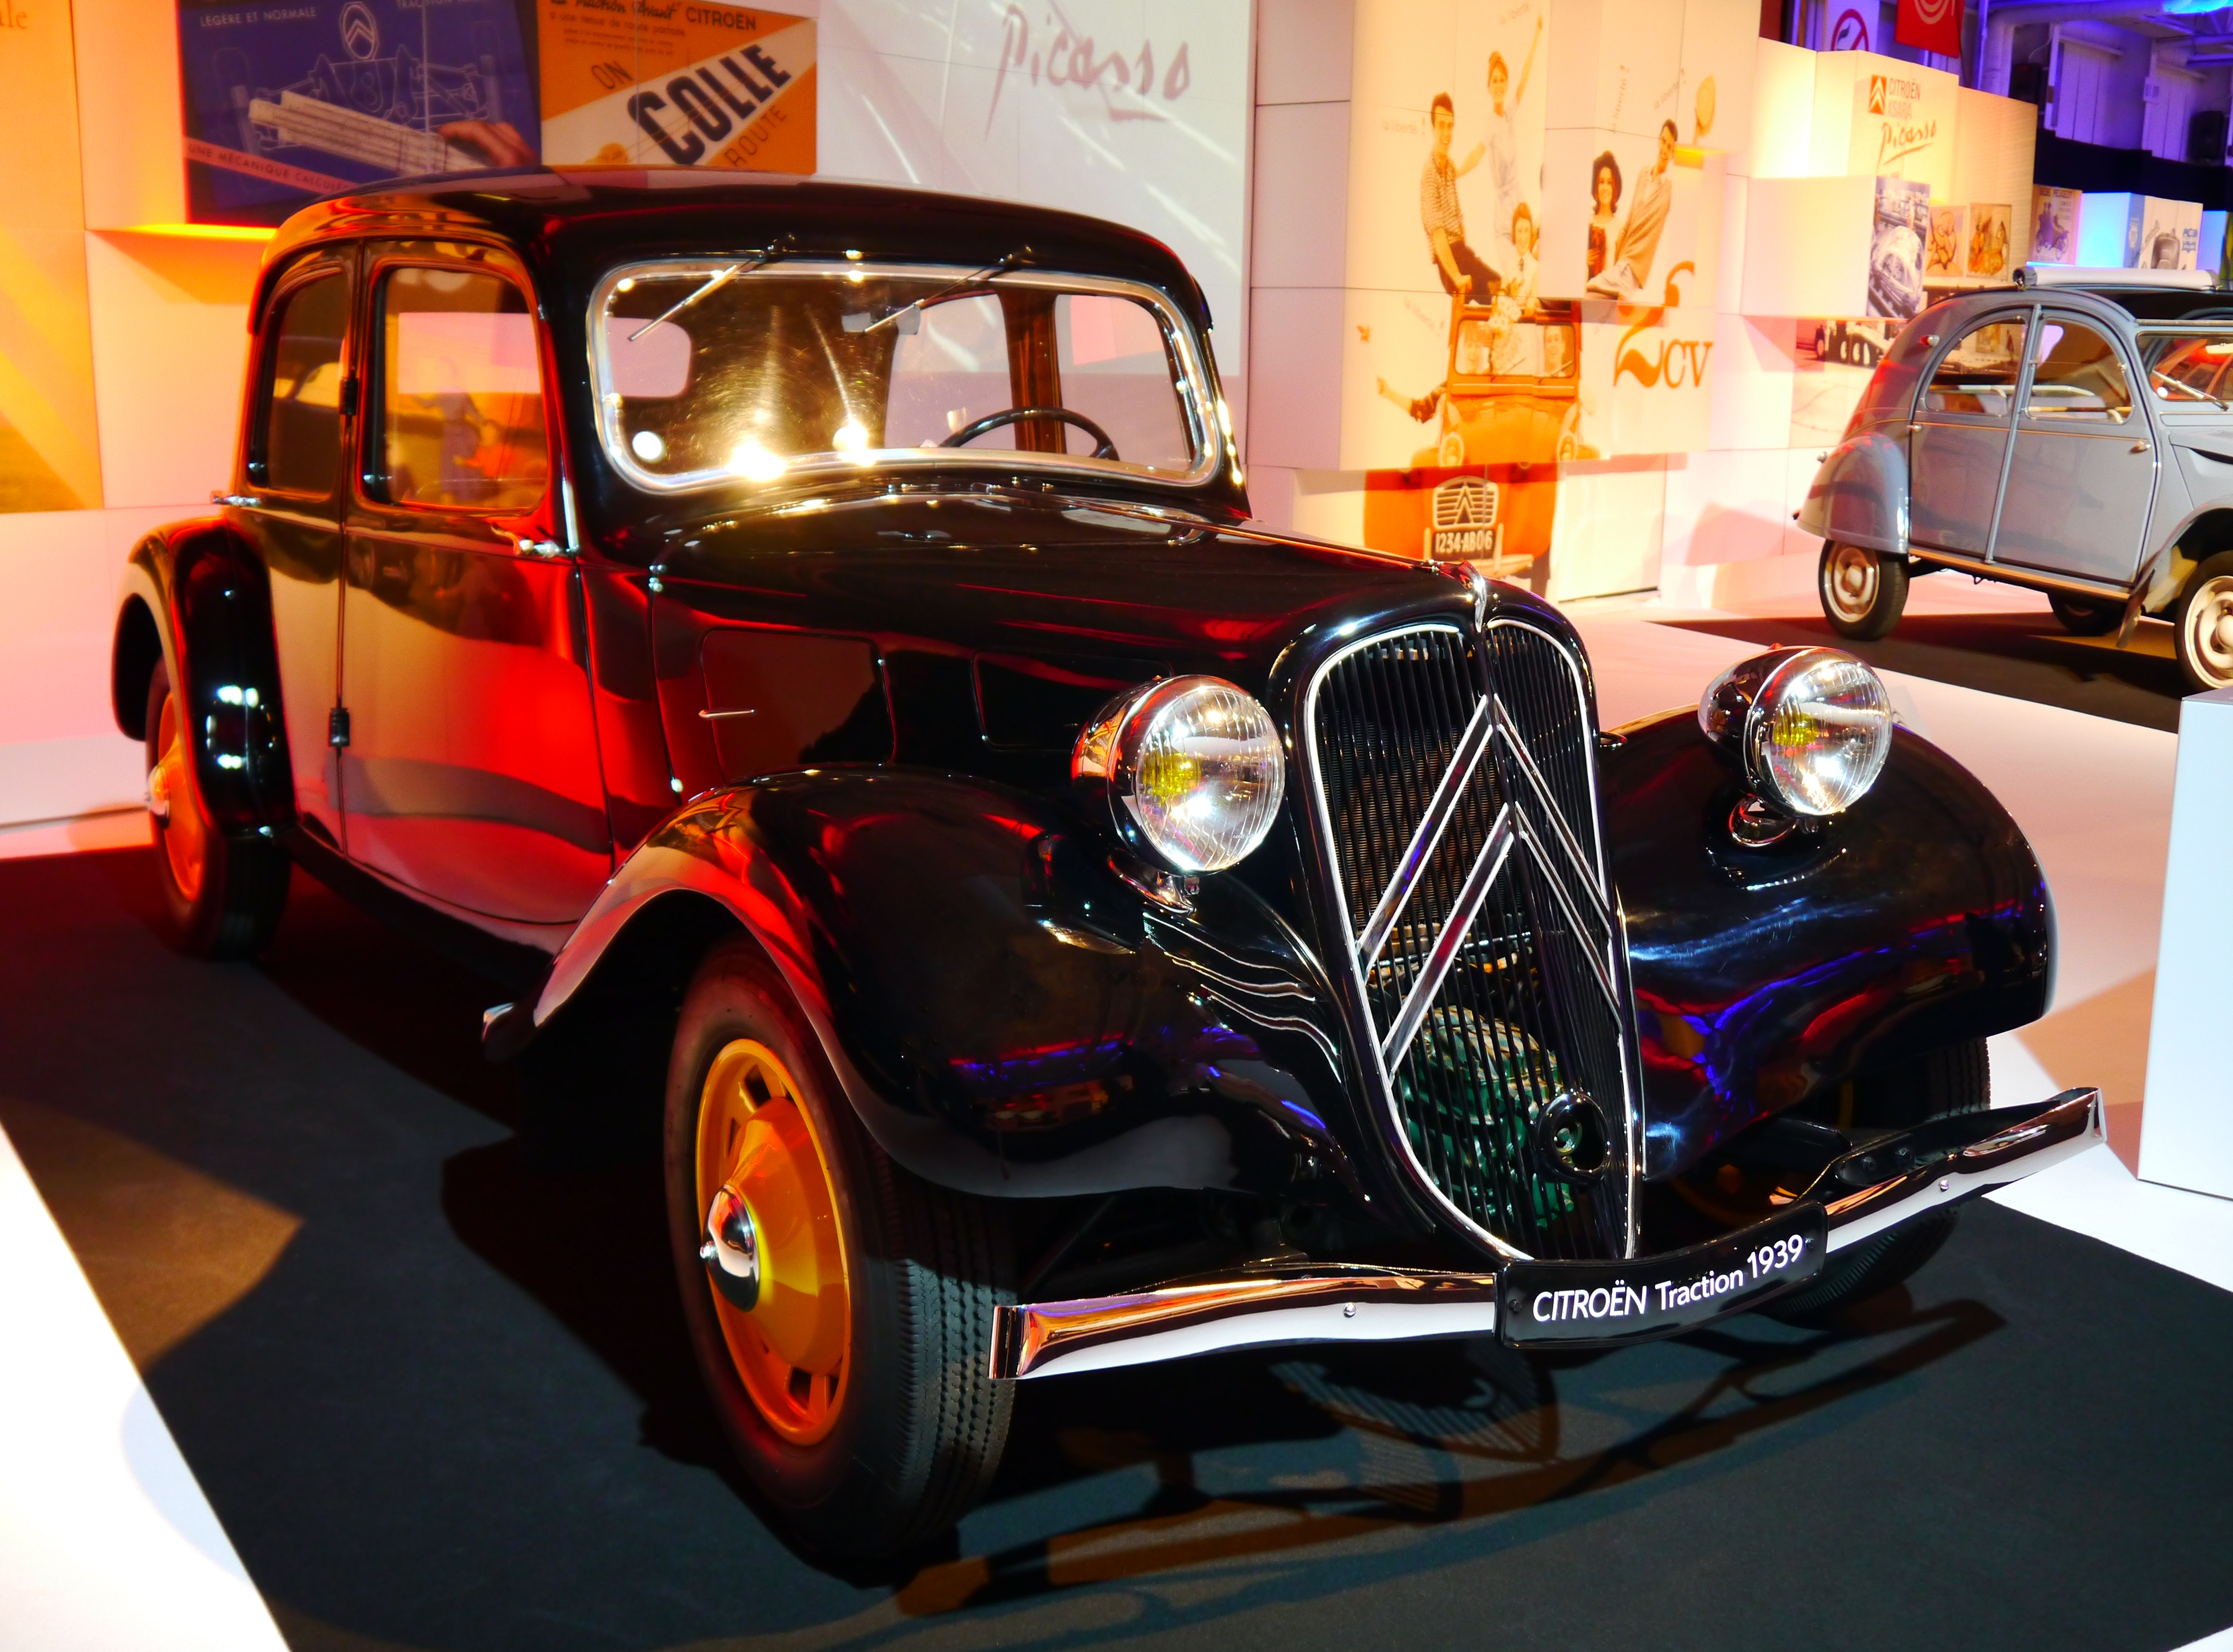 file mondial de l 39 automobile 2012 paris france 8665396785 jpg wikimedia commons. Black Bedroom Furniture Sets. Home Design Ideas